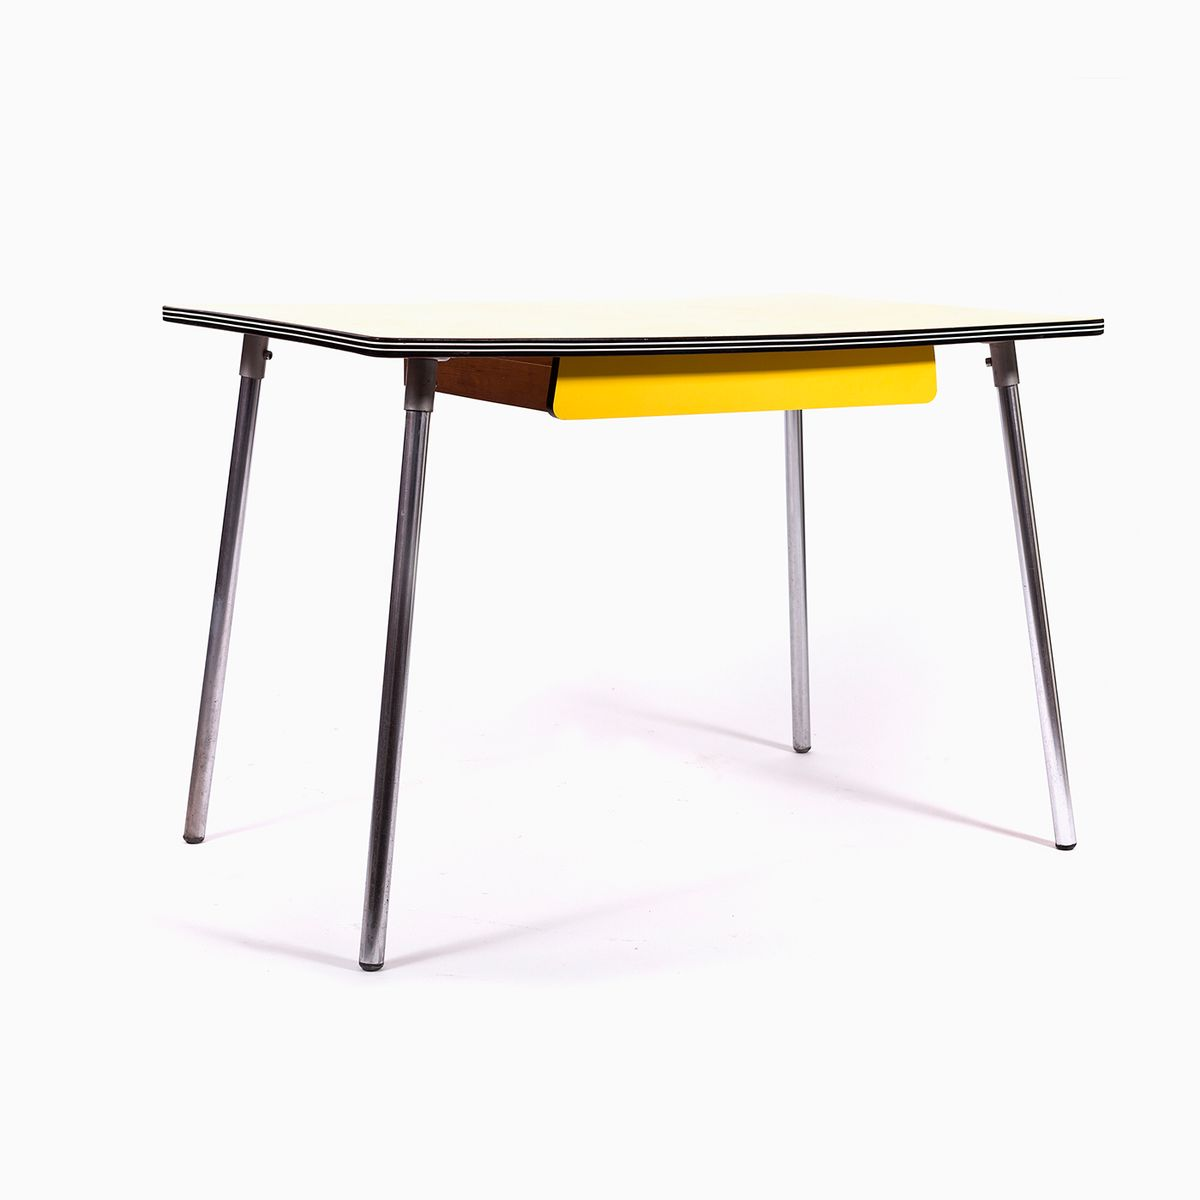 Vintage Yellow Formica Dining Table with Chrome Legs for  : vintage yellow formica dining table with chrome legs 1 from www.pamono.eu size 1200 x 1200 jpeg 33kB